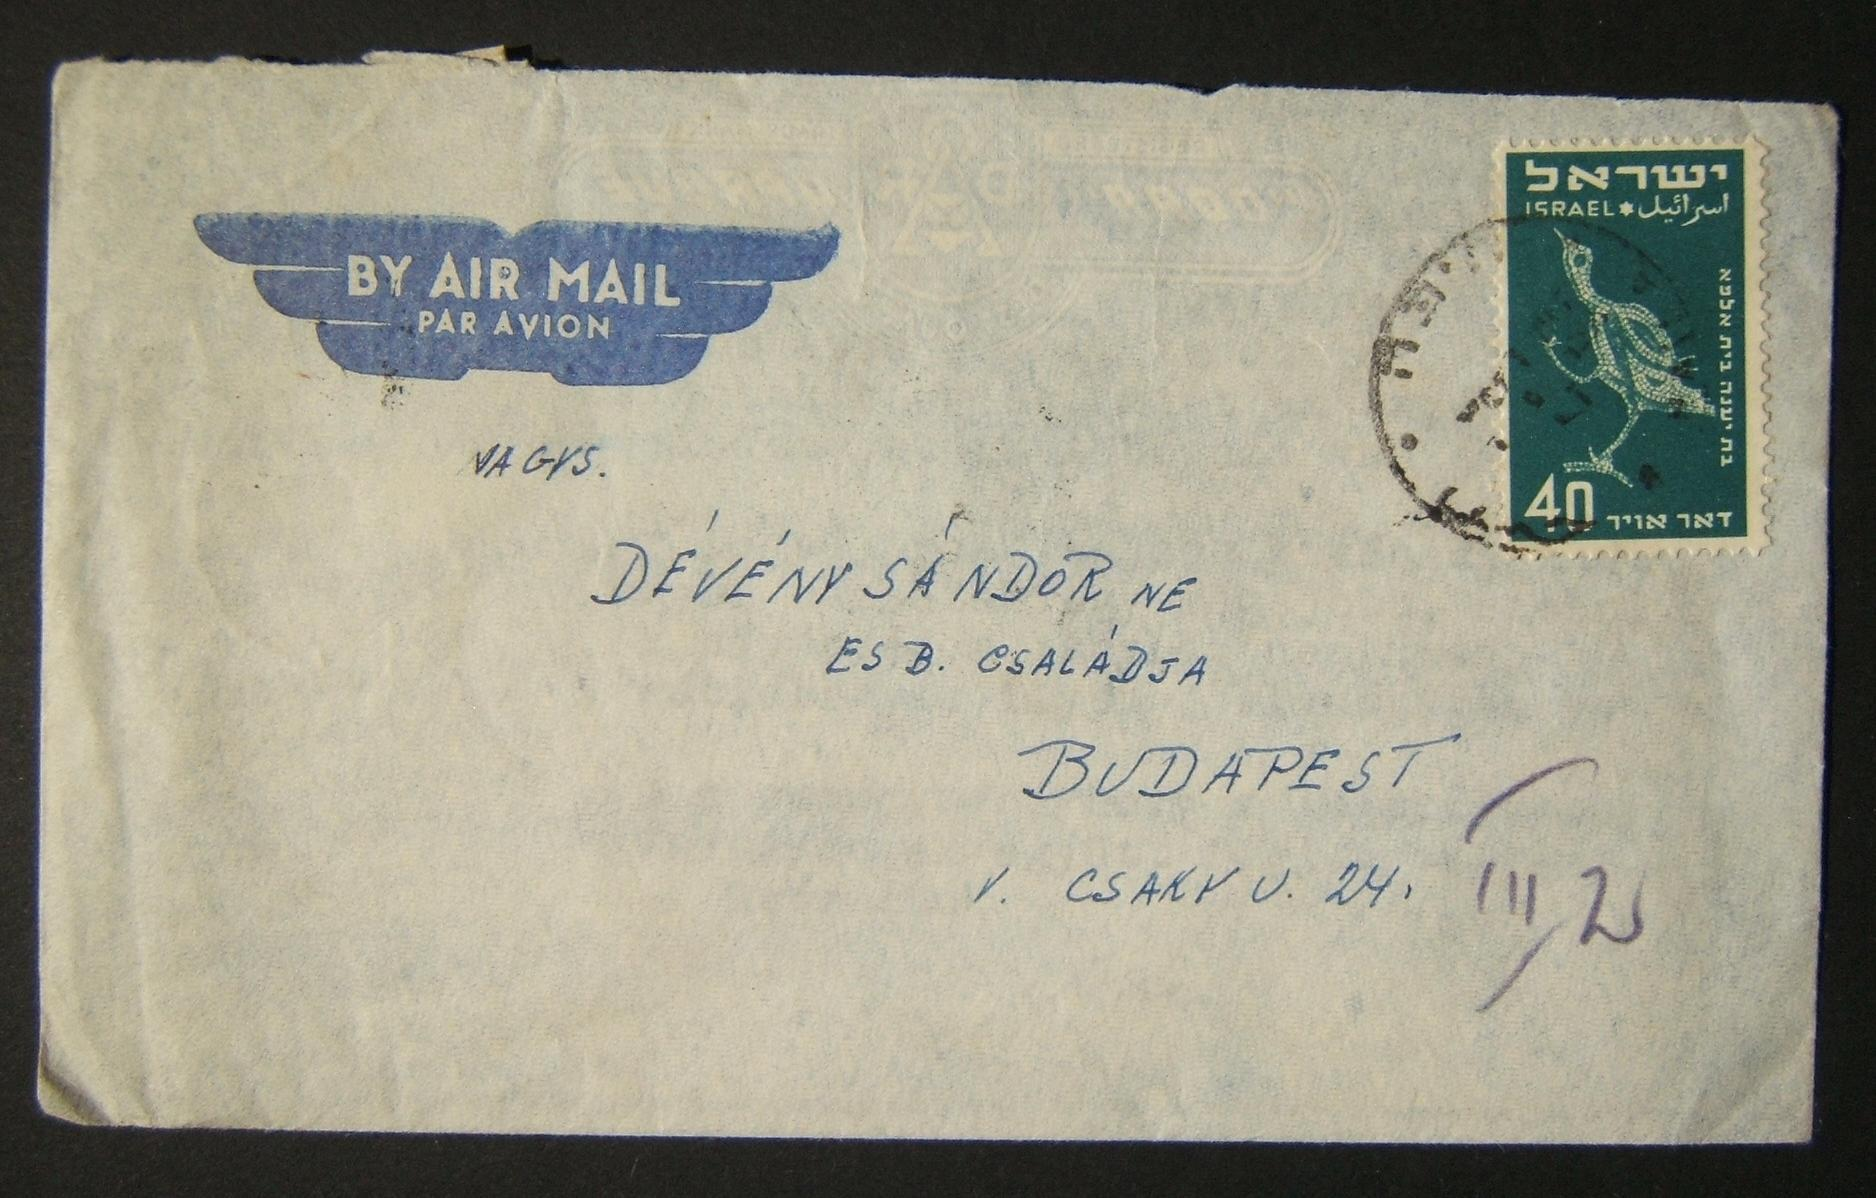 1950 1st airmail / PO's, rates & routes: 7(?)-9-1950 airmail cover ex HAIFA to BUDAPEST franked 40pr at the FA-2a period rate to Europe using single 40pr (Ba34) tied by single stri